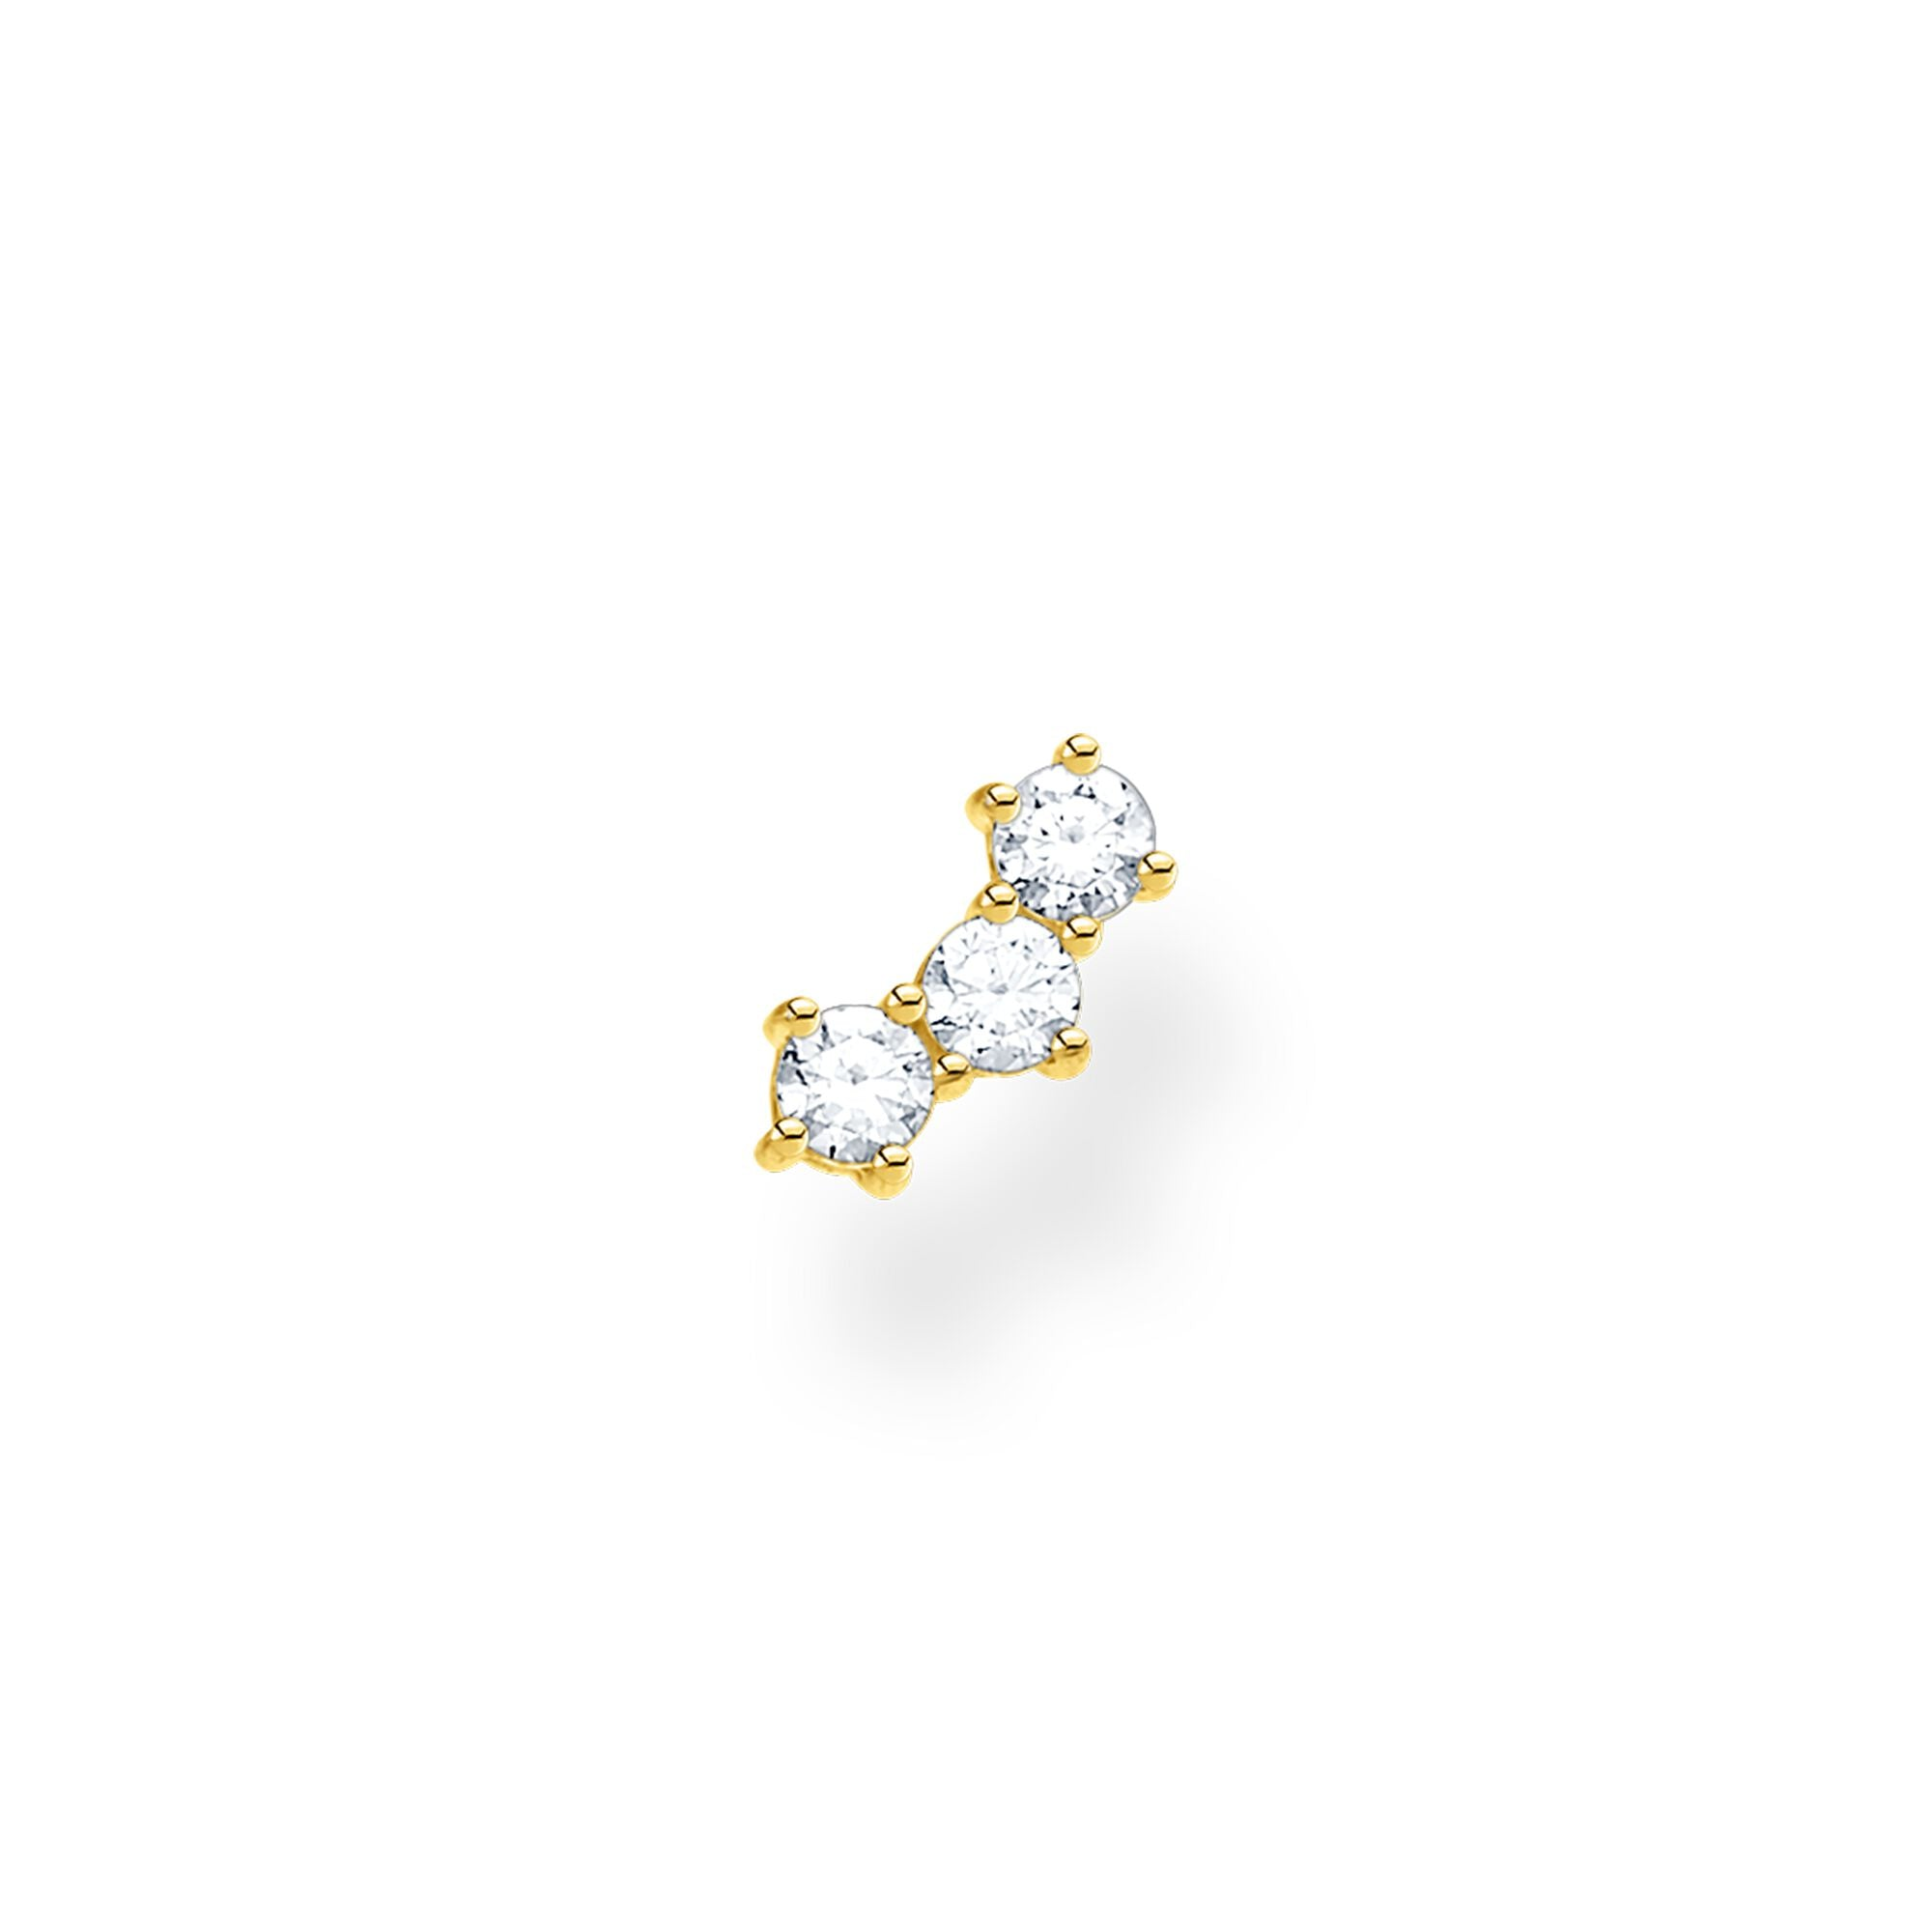 Thomas Sabo, Sterling Silver, Yellow Gold Plated, Cubic Zirconia, Single Earring Stud, Three Stone, Curved, Push backing, Ottawa